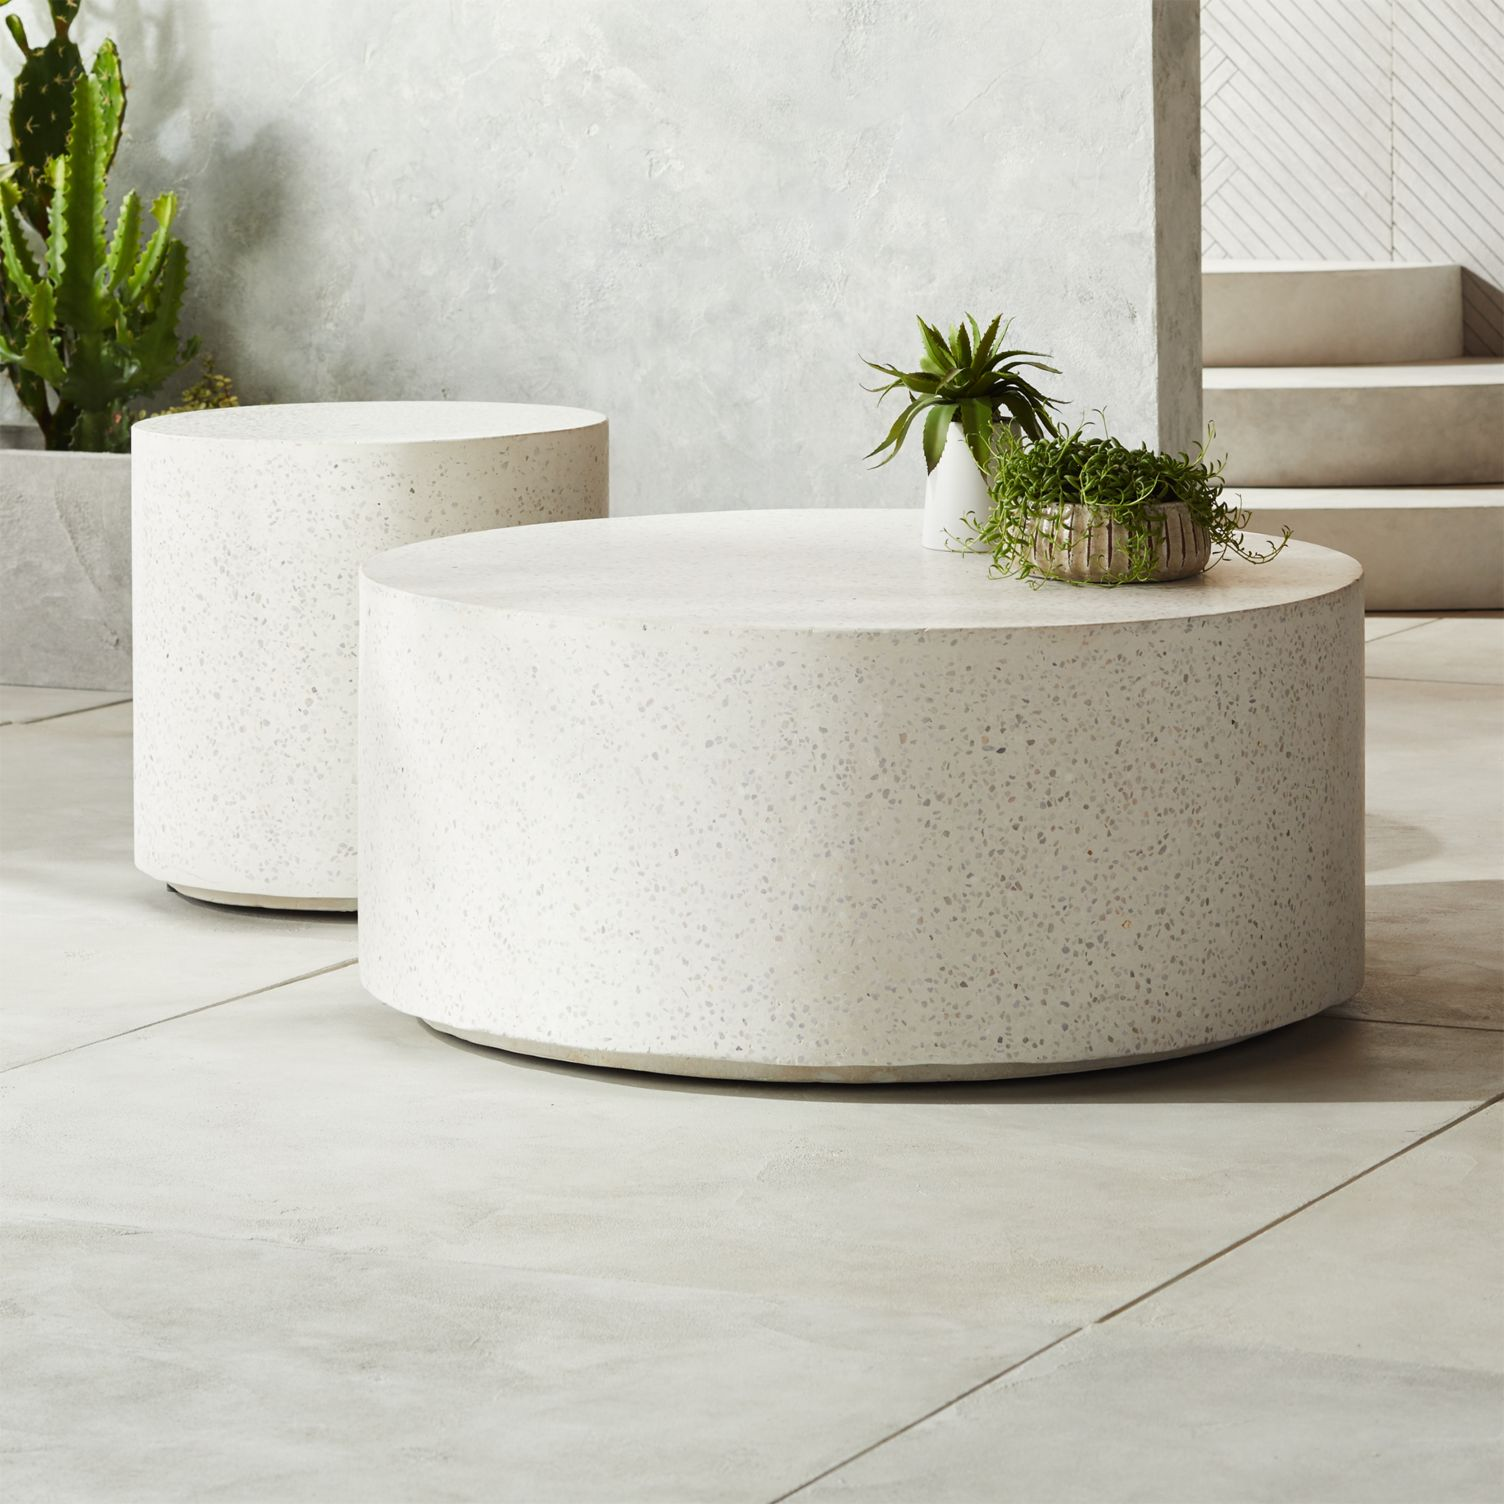 Terrazzo tables from CB2